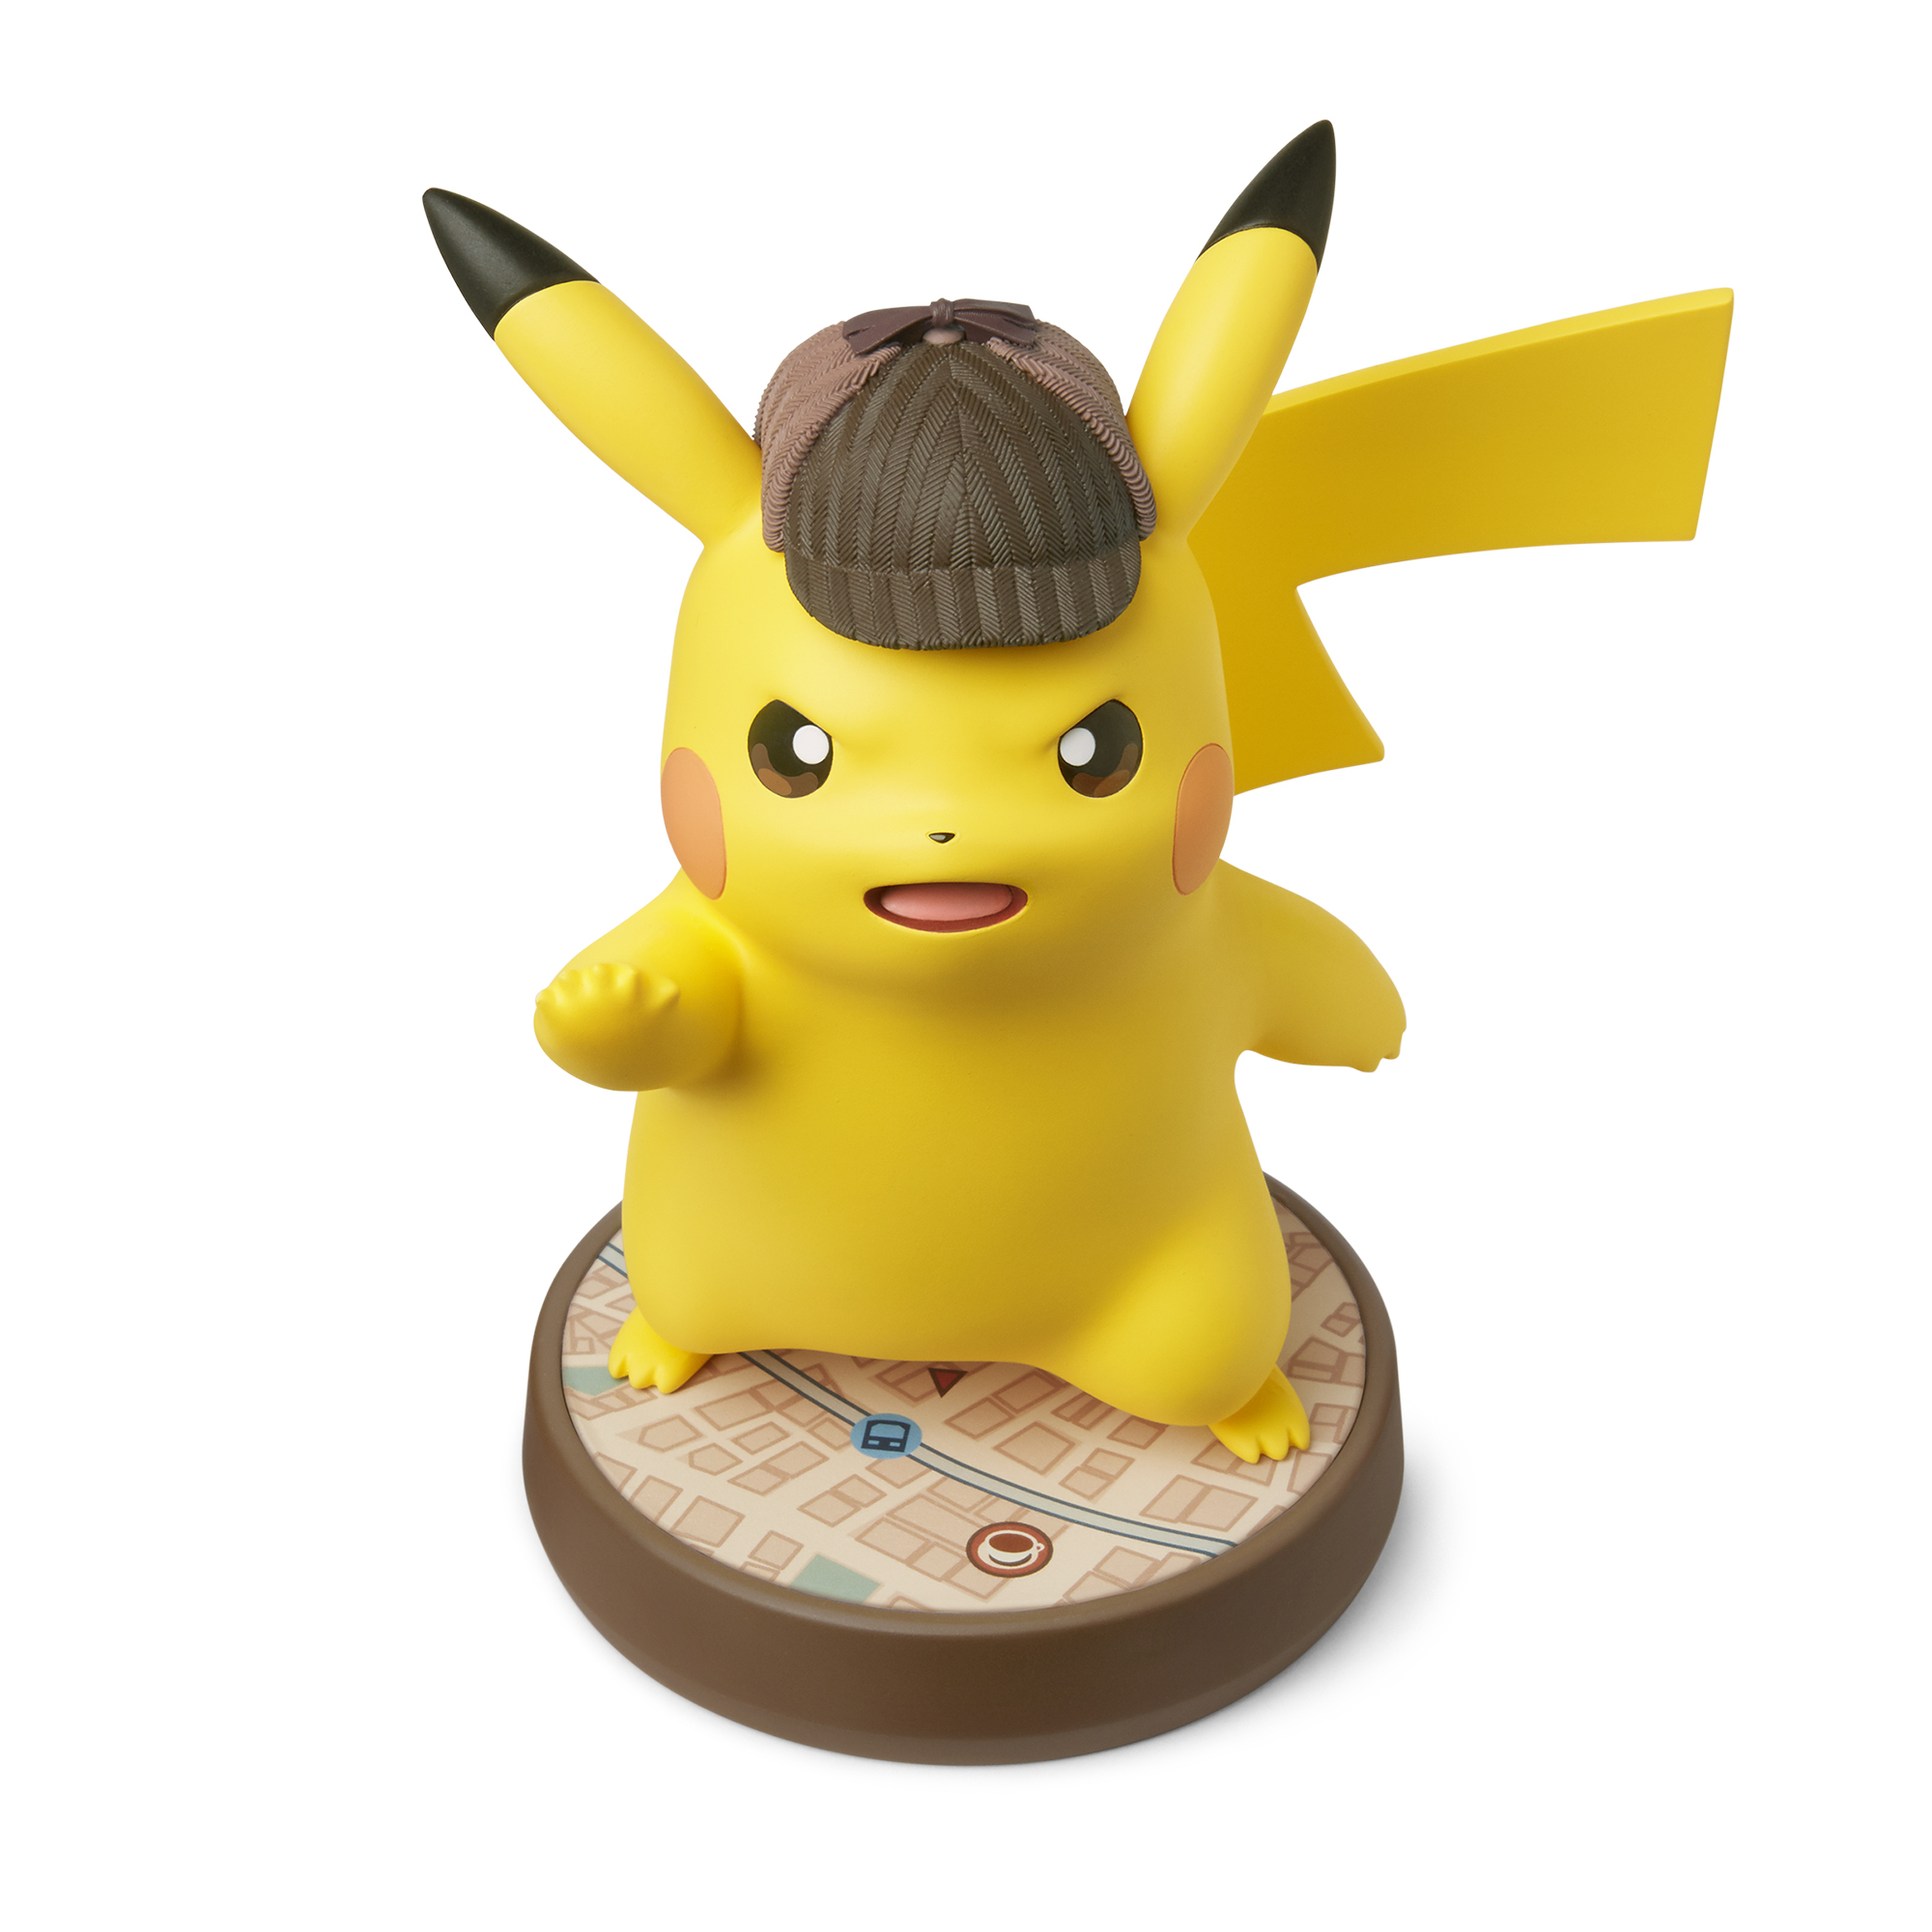 Detective Pikachu Amiibo Figure Costs 29 99 Isn T Required To